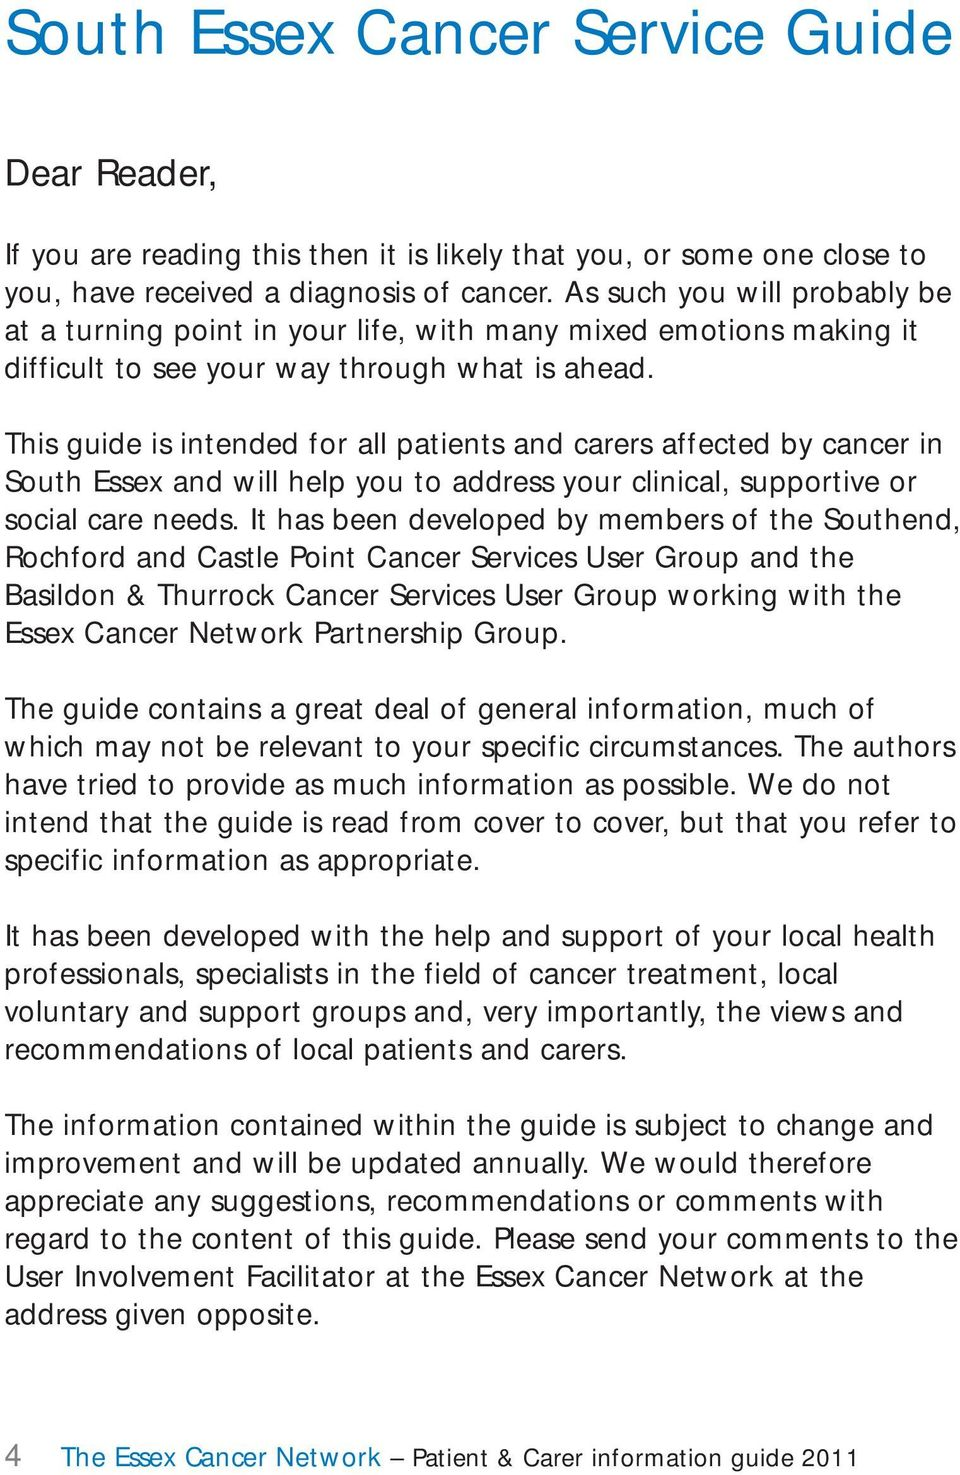 This guide is intended for all patients and carers affected by cancer in South Essex and will help you to address your clinical, supportive or social care needs.